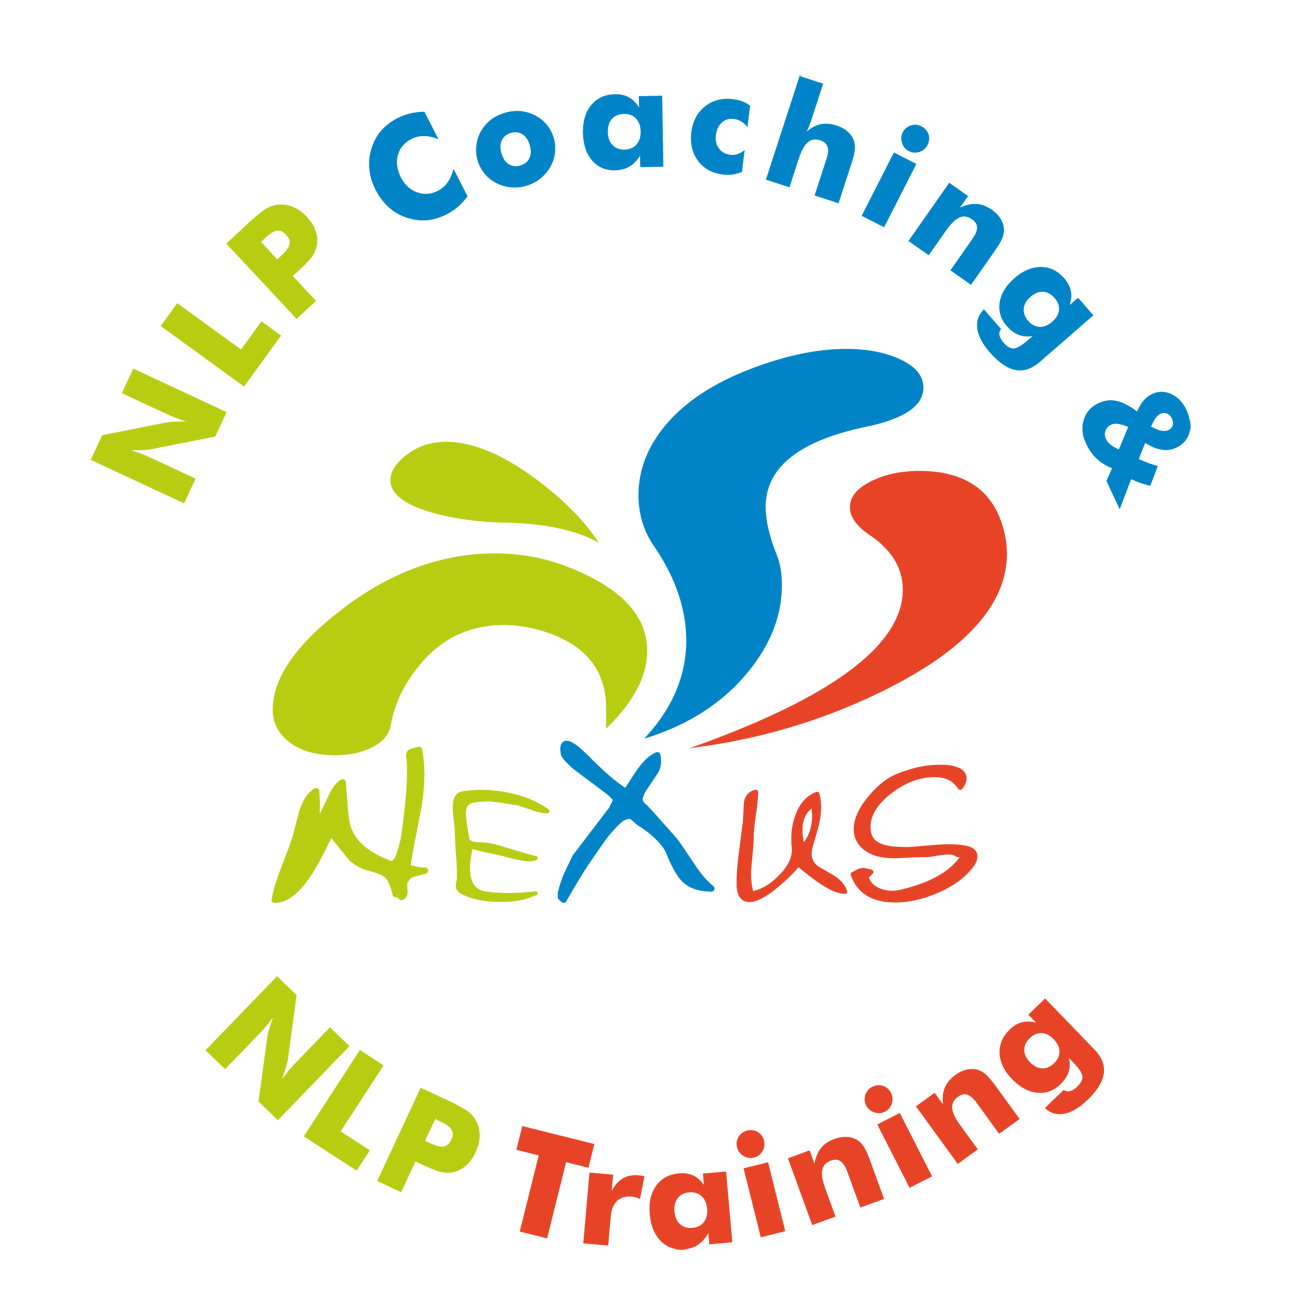 Coaching Winnenden schnelle Lösungen mit NLP-Coaching Selbstbewusstseins-Coaching Winnenden, Selbstvertrauens-Coaching, Selbstsicherheits-Coaching, Selbstwert-Coaching